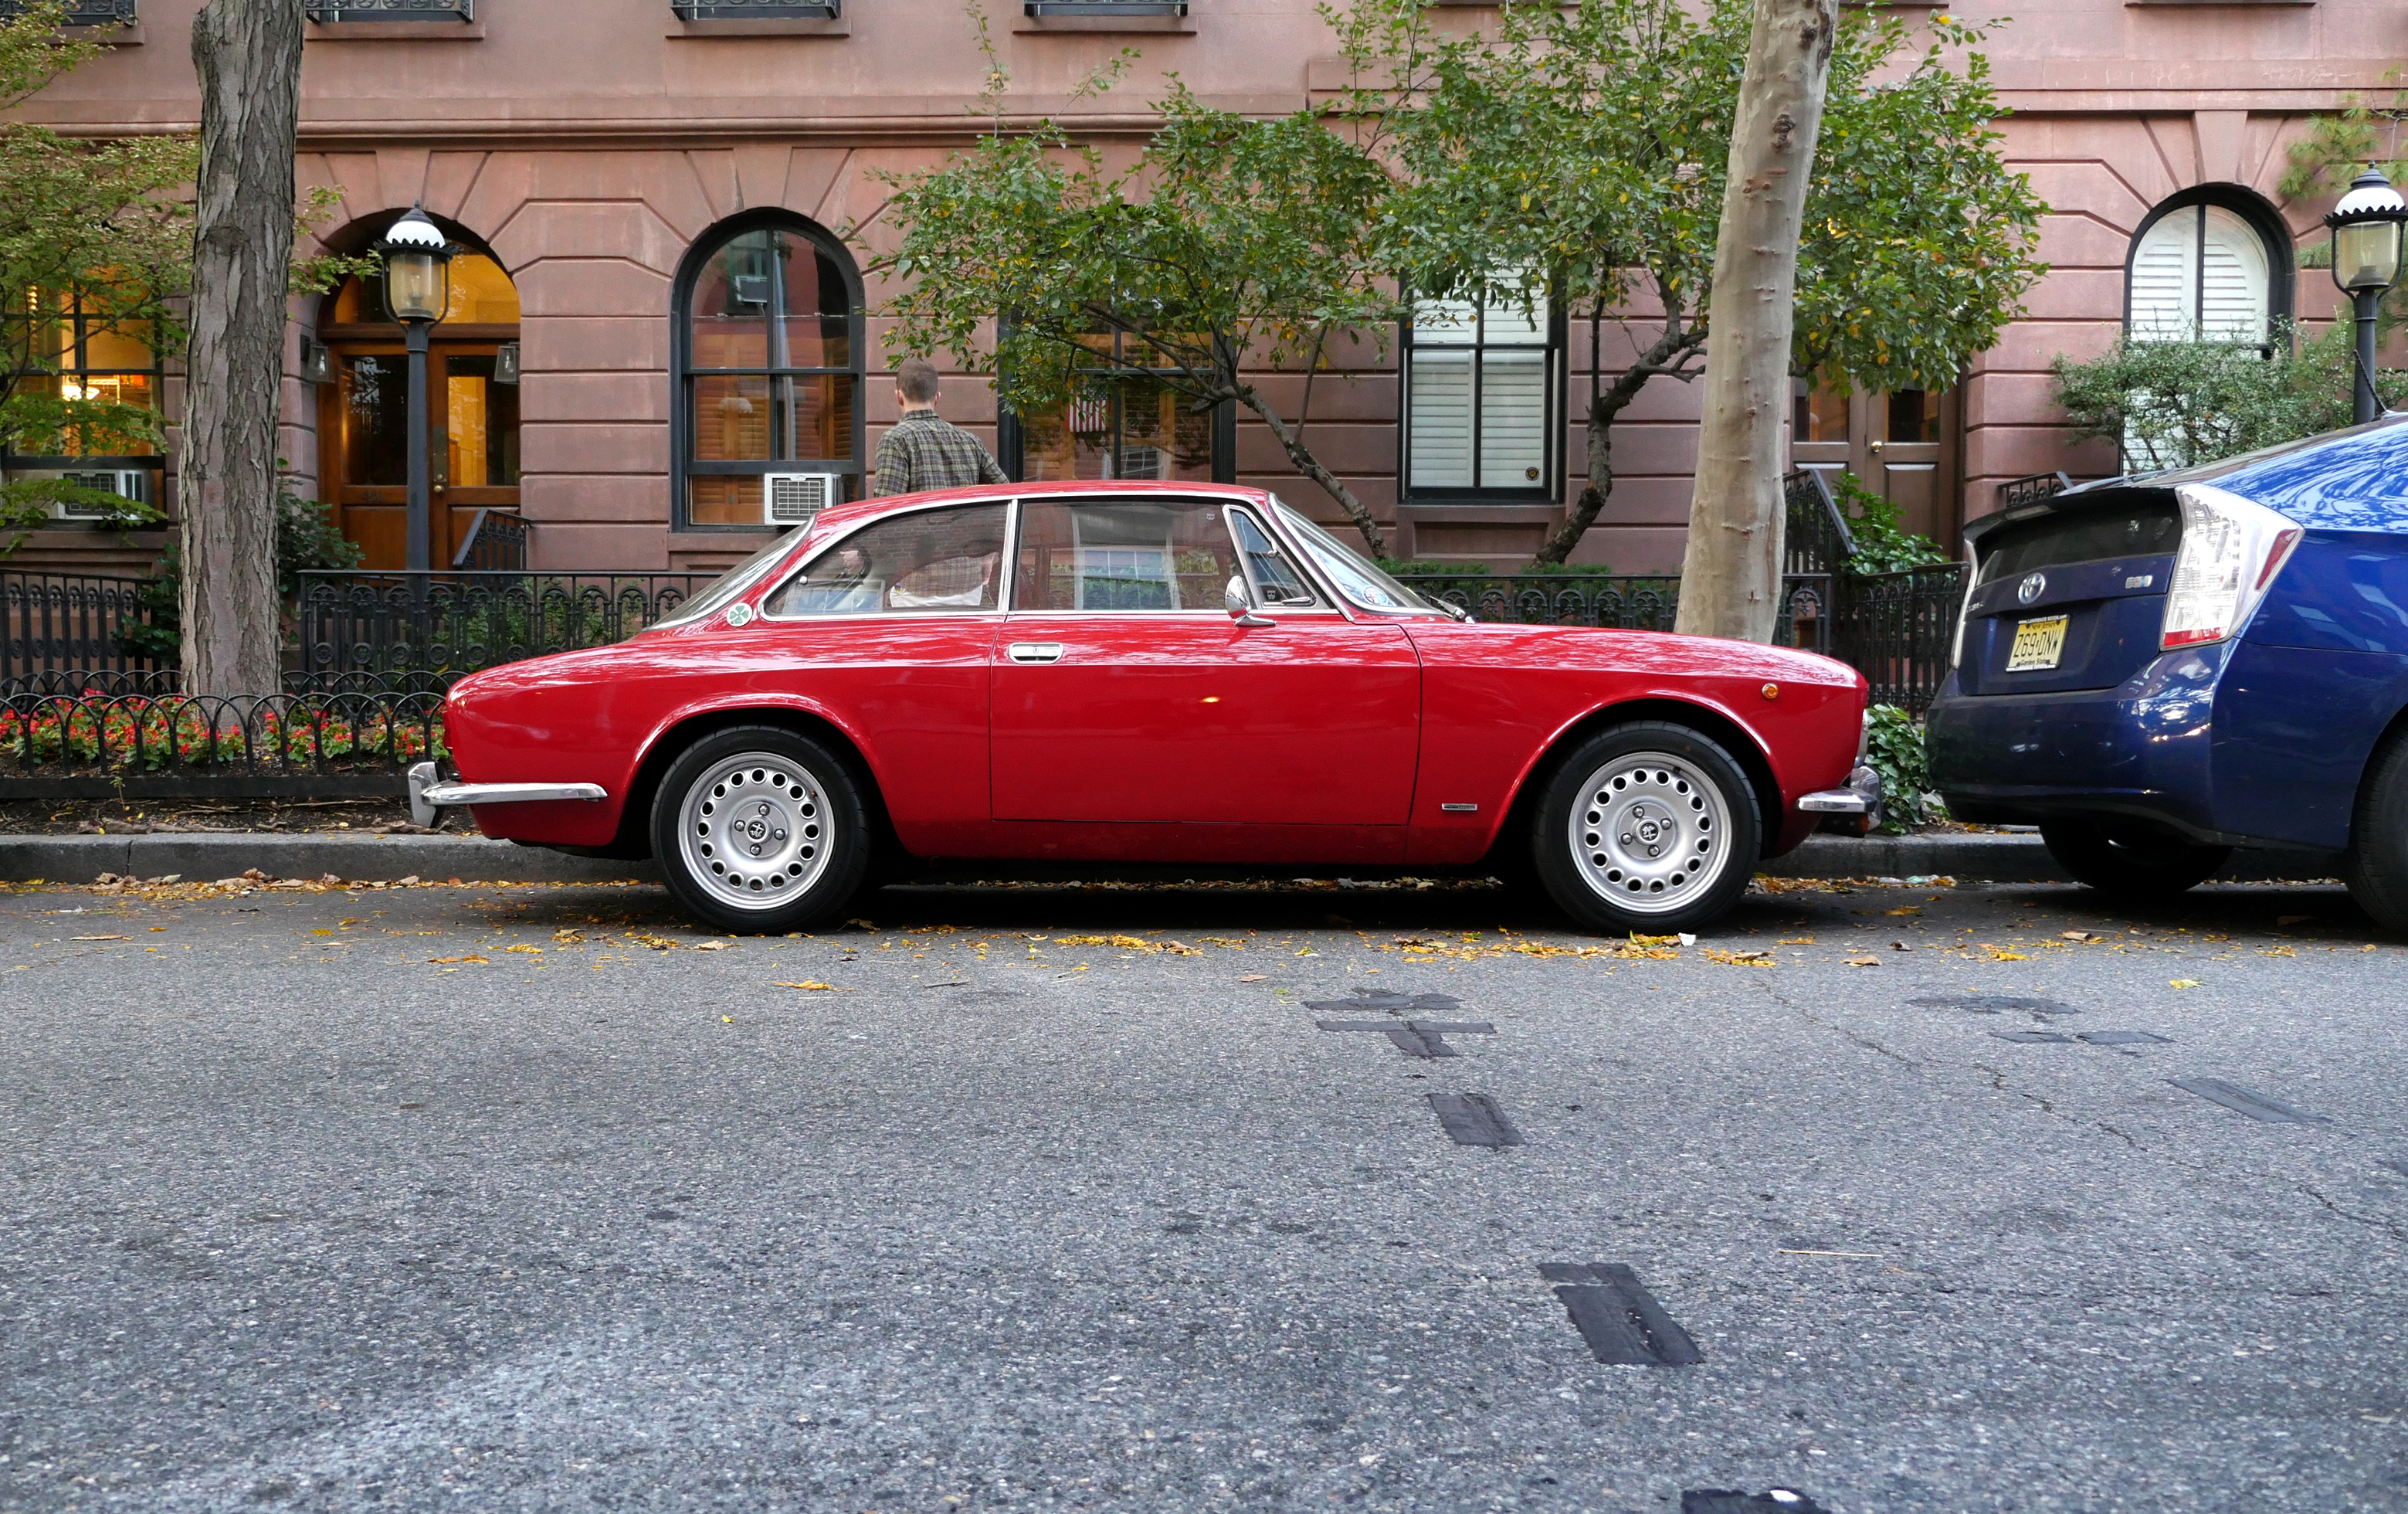 Classic Red Coupe Parked Near Blue Toyota Prius on Sidewalk